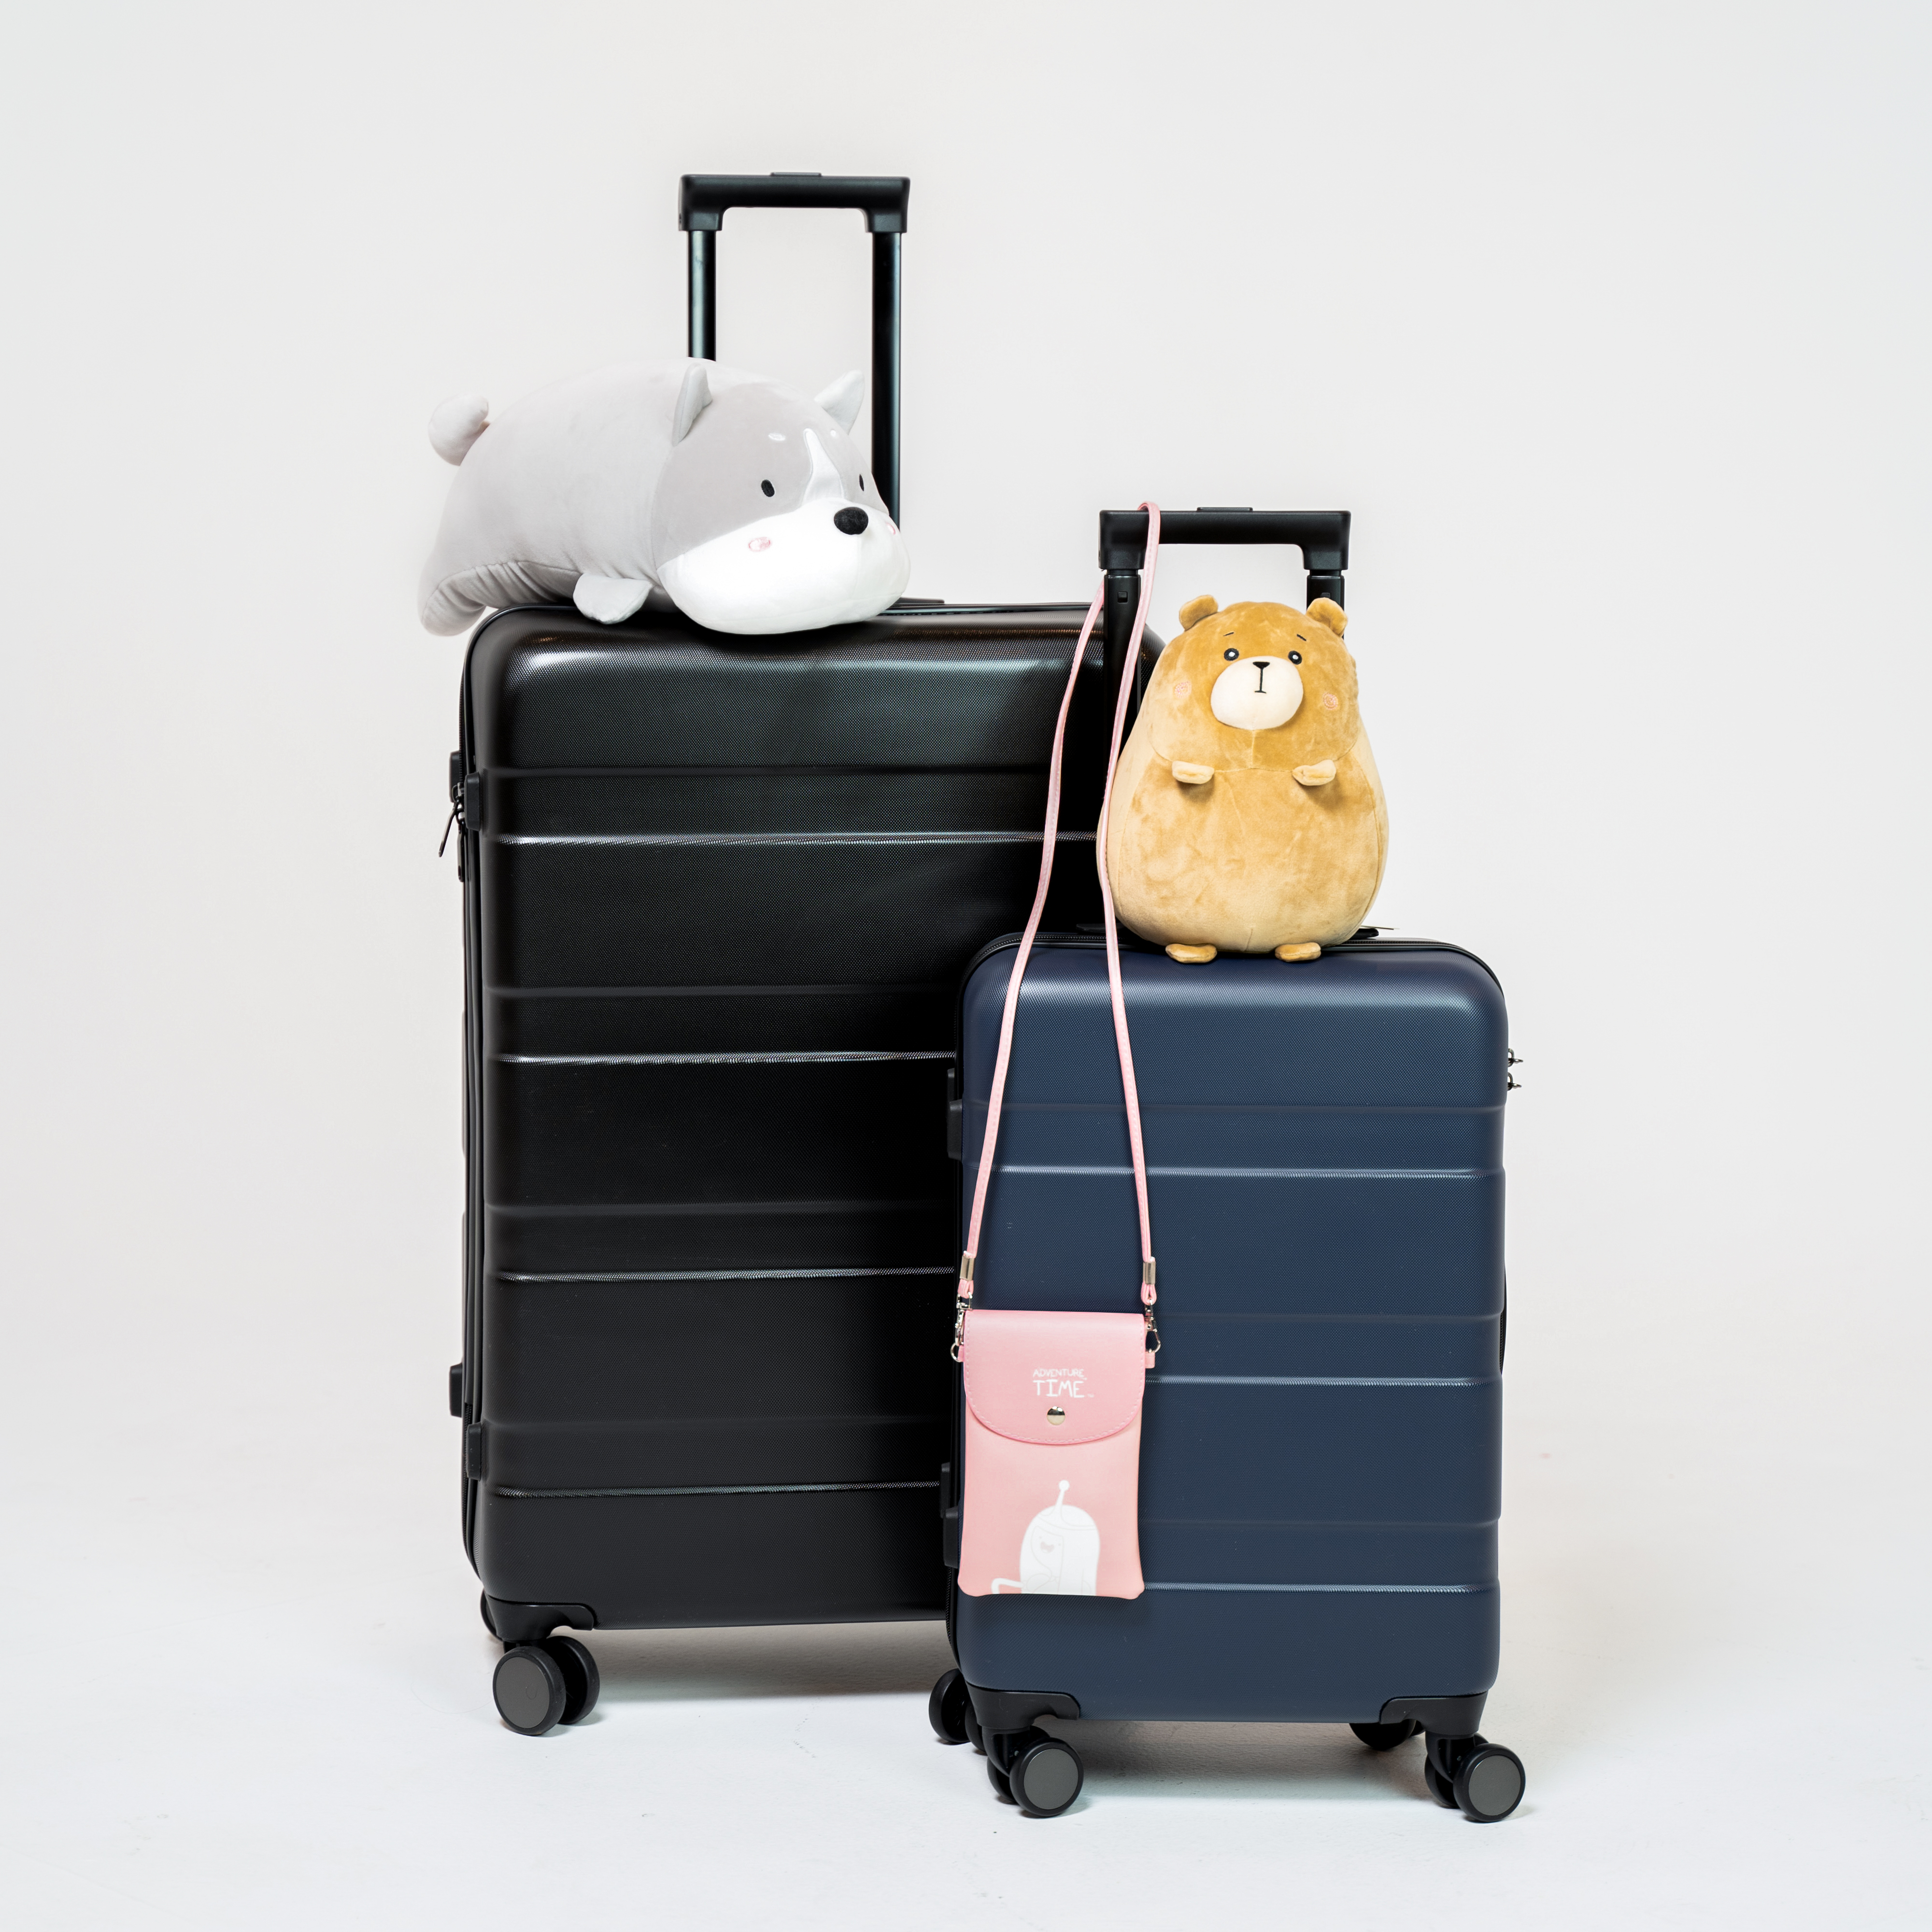 Two sizes of travel luggage.  Black and blue roller luggage on a white back ground.  Stuffed plush animals on the luggage.